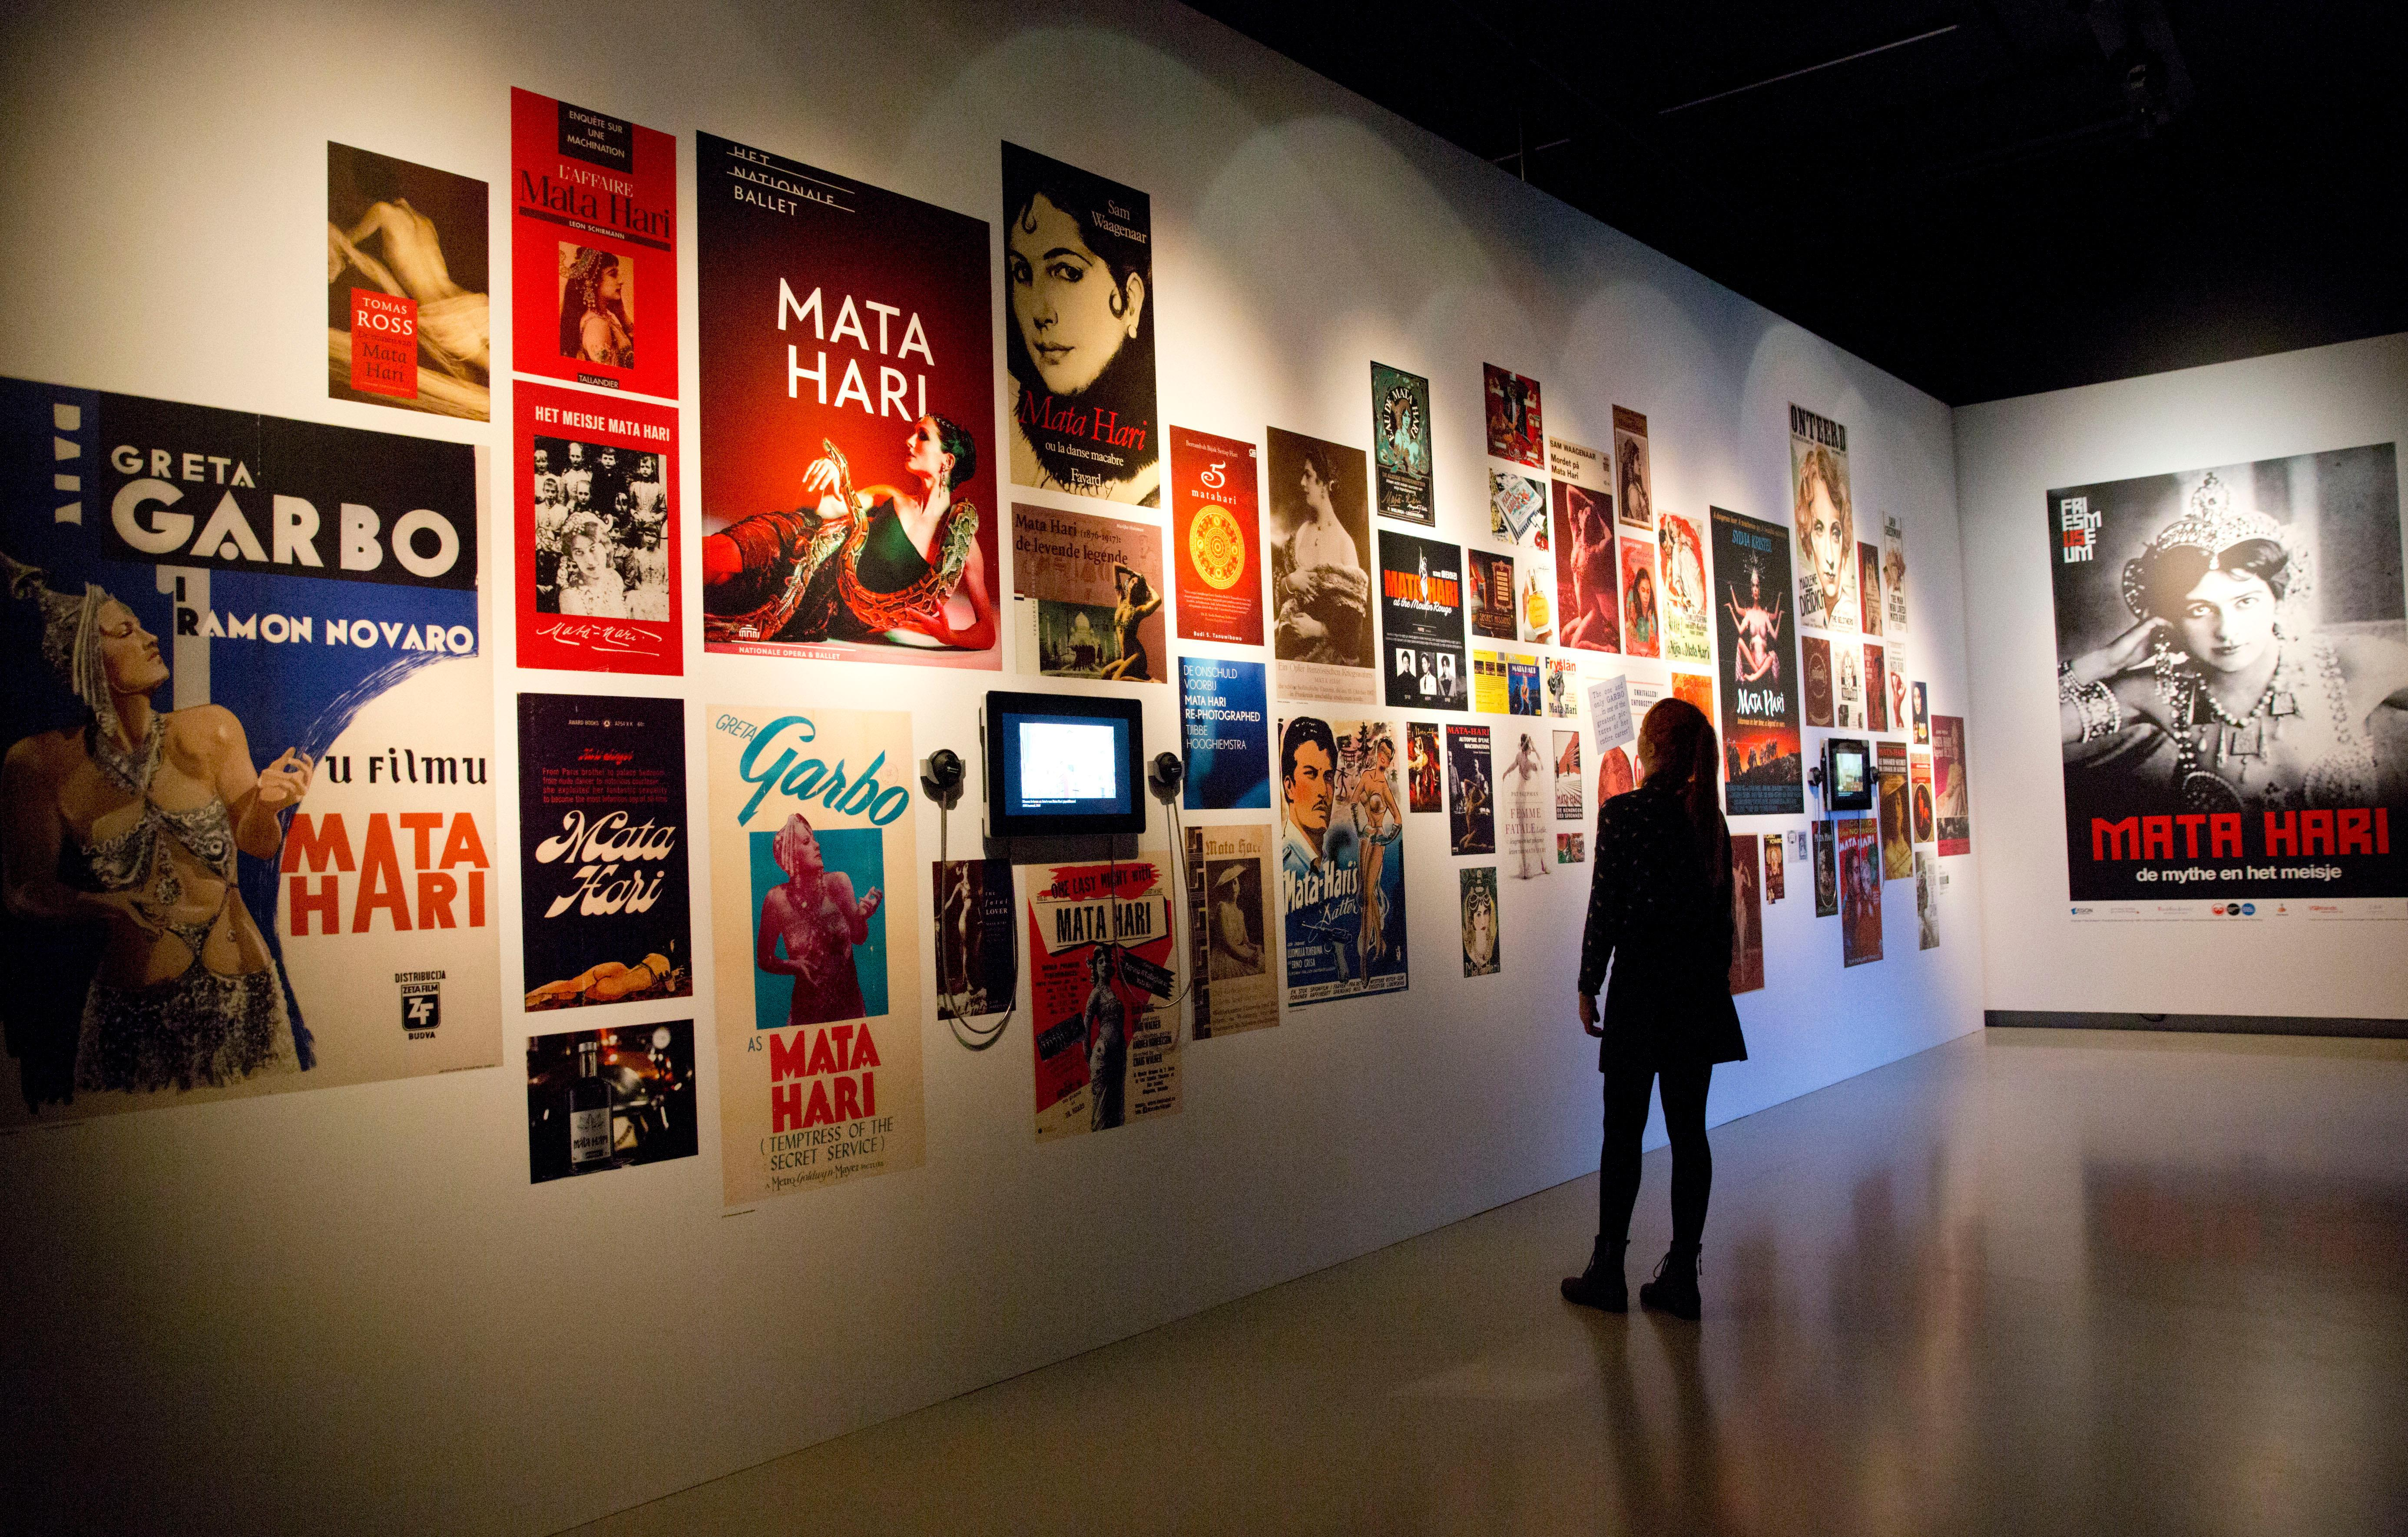 In this photo taken on Friday, Oct. 13, 2017, a visitor views posters of movies that have been made about Margaretha Zelle, also known as Mata Hari, at the Fries Museum in Leeuwarden, Netherlands. A century ago, on Oct. 15, 1917, an exotic dancer named Mata Hari was executed by a French firing squad, condemned as a sultry Dutch double agent who supposedly led tens of thousands of soldiers to their death during World War I. (AP Photo/Virginia Mayo)